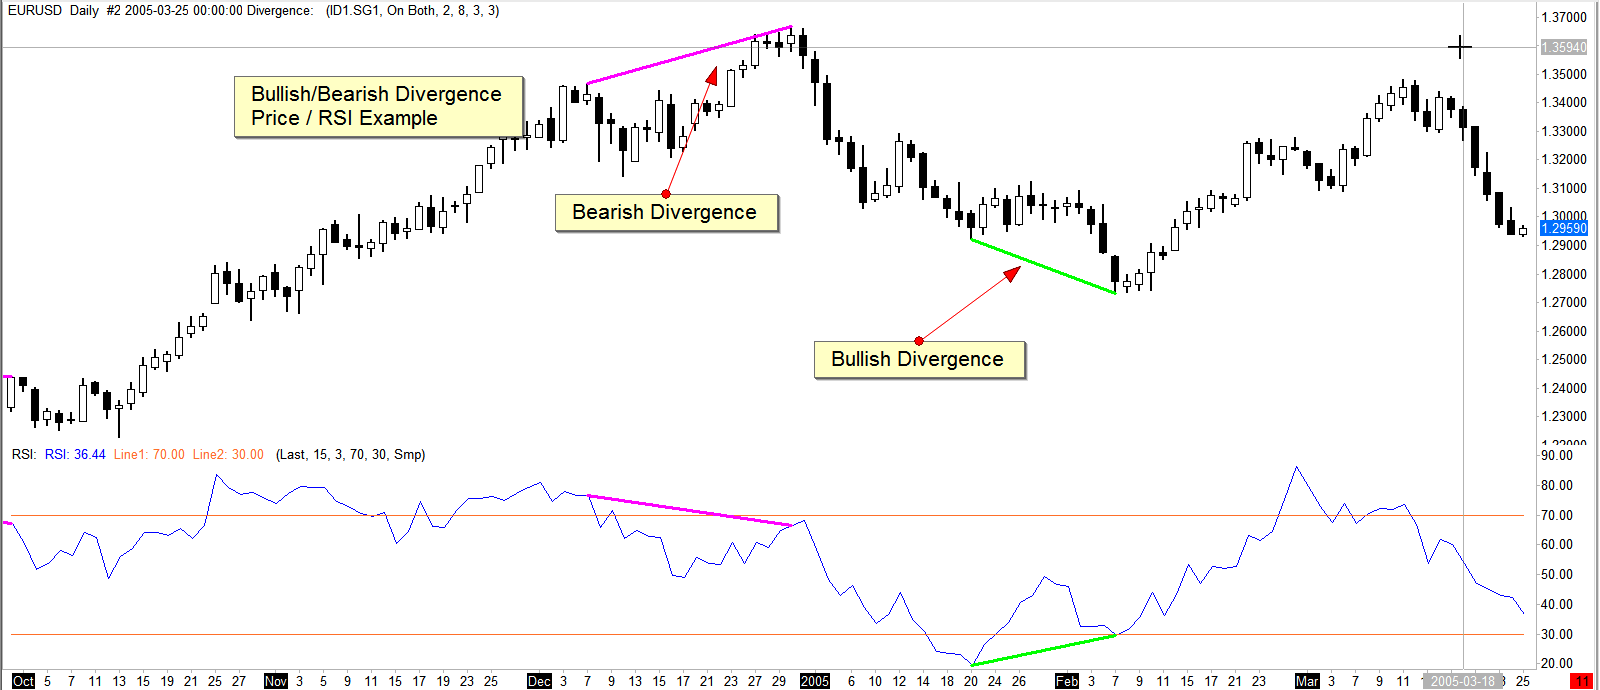 bullish and bearish divergence price rsi